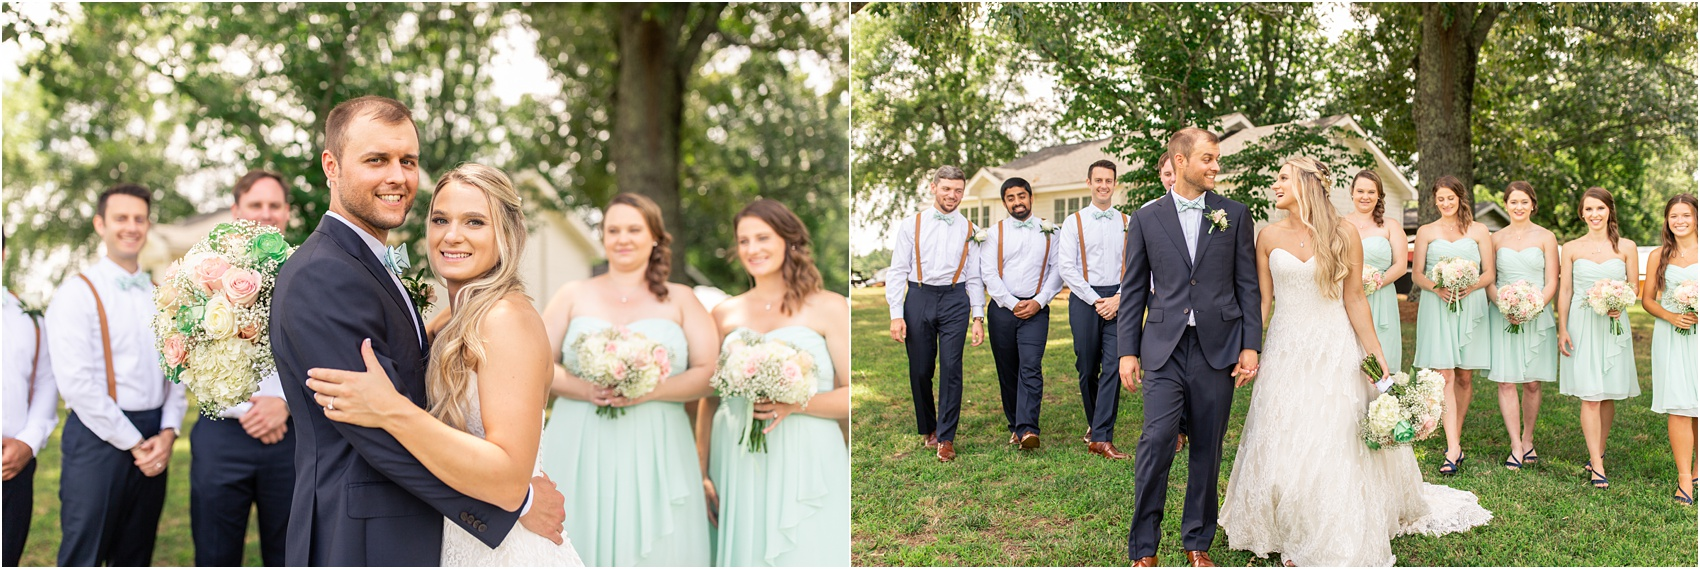 Savannah Eve Photography LLC- Wandolowski-Boyer Wedding-Blog-29.jpg